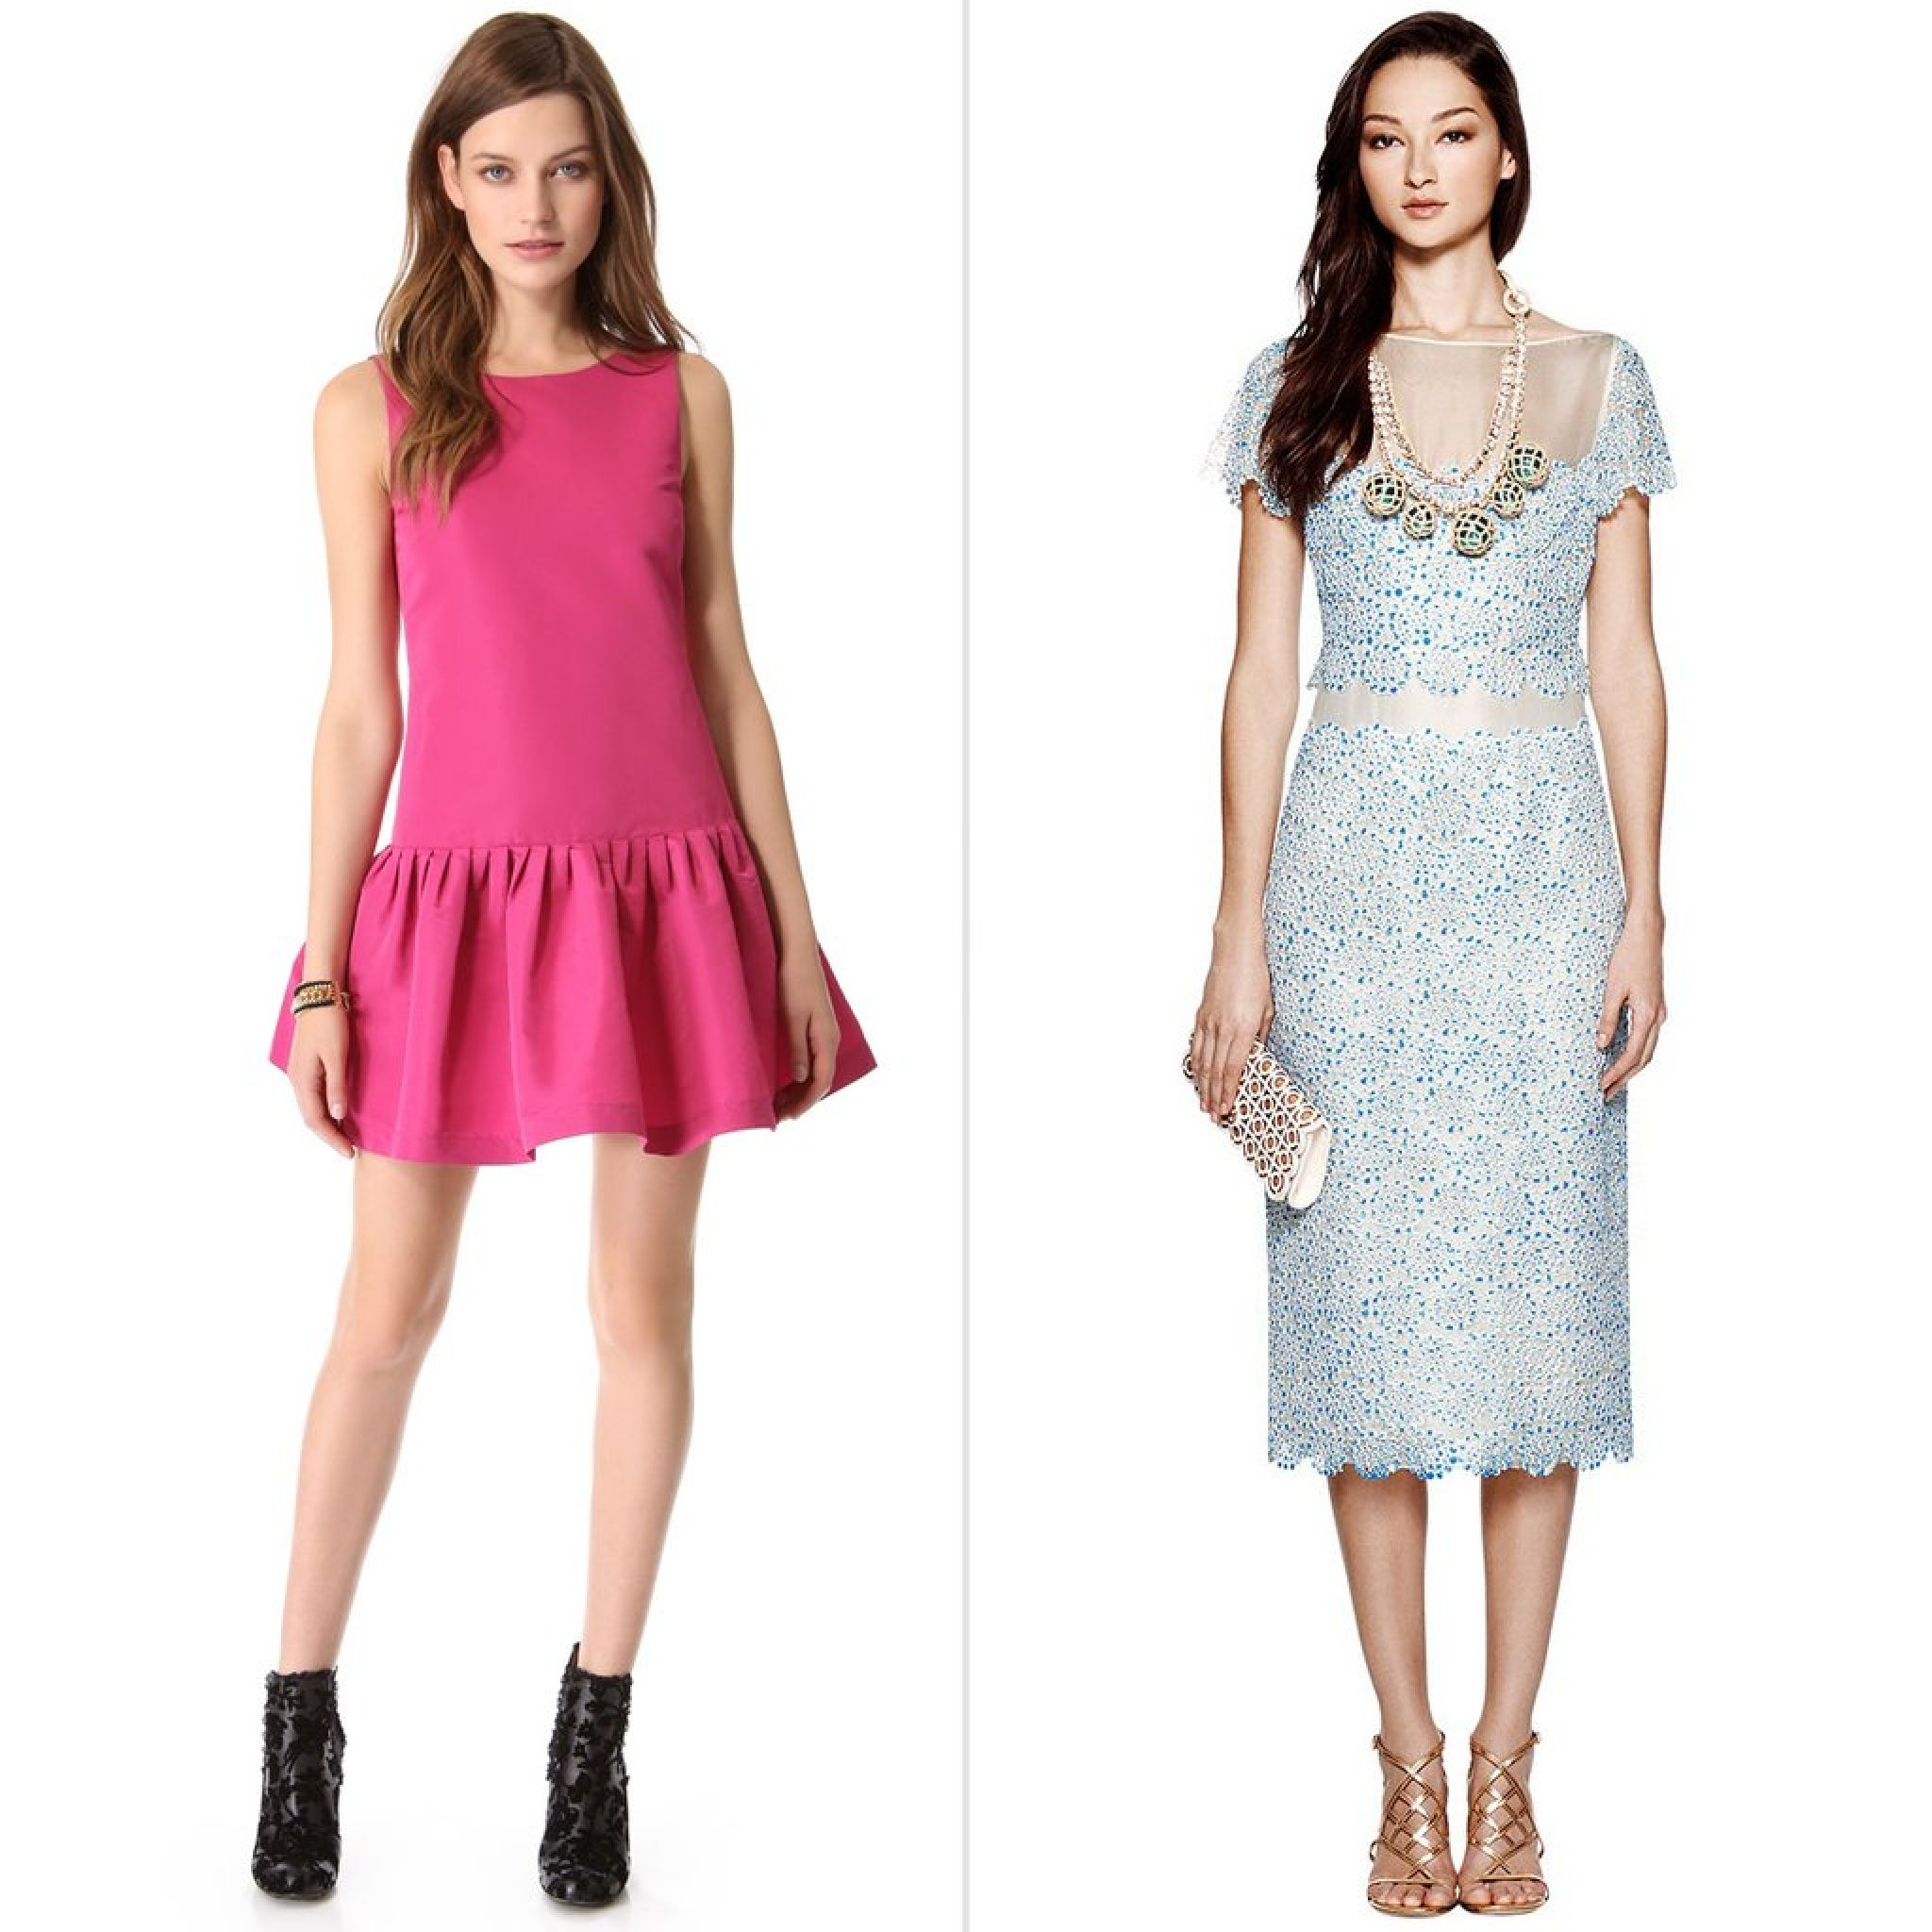 wedding dress to cocktail dress - best dresses for wedding Check ...